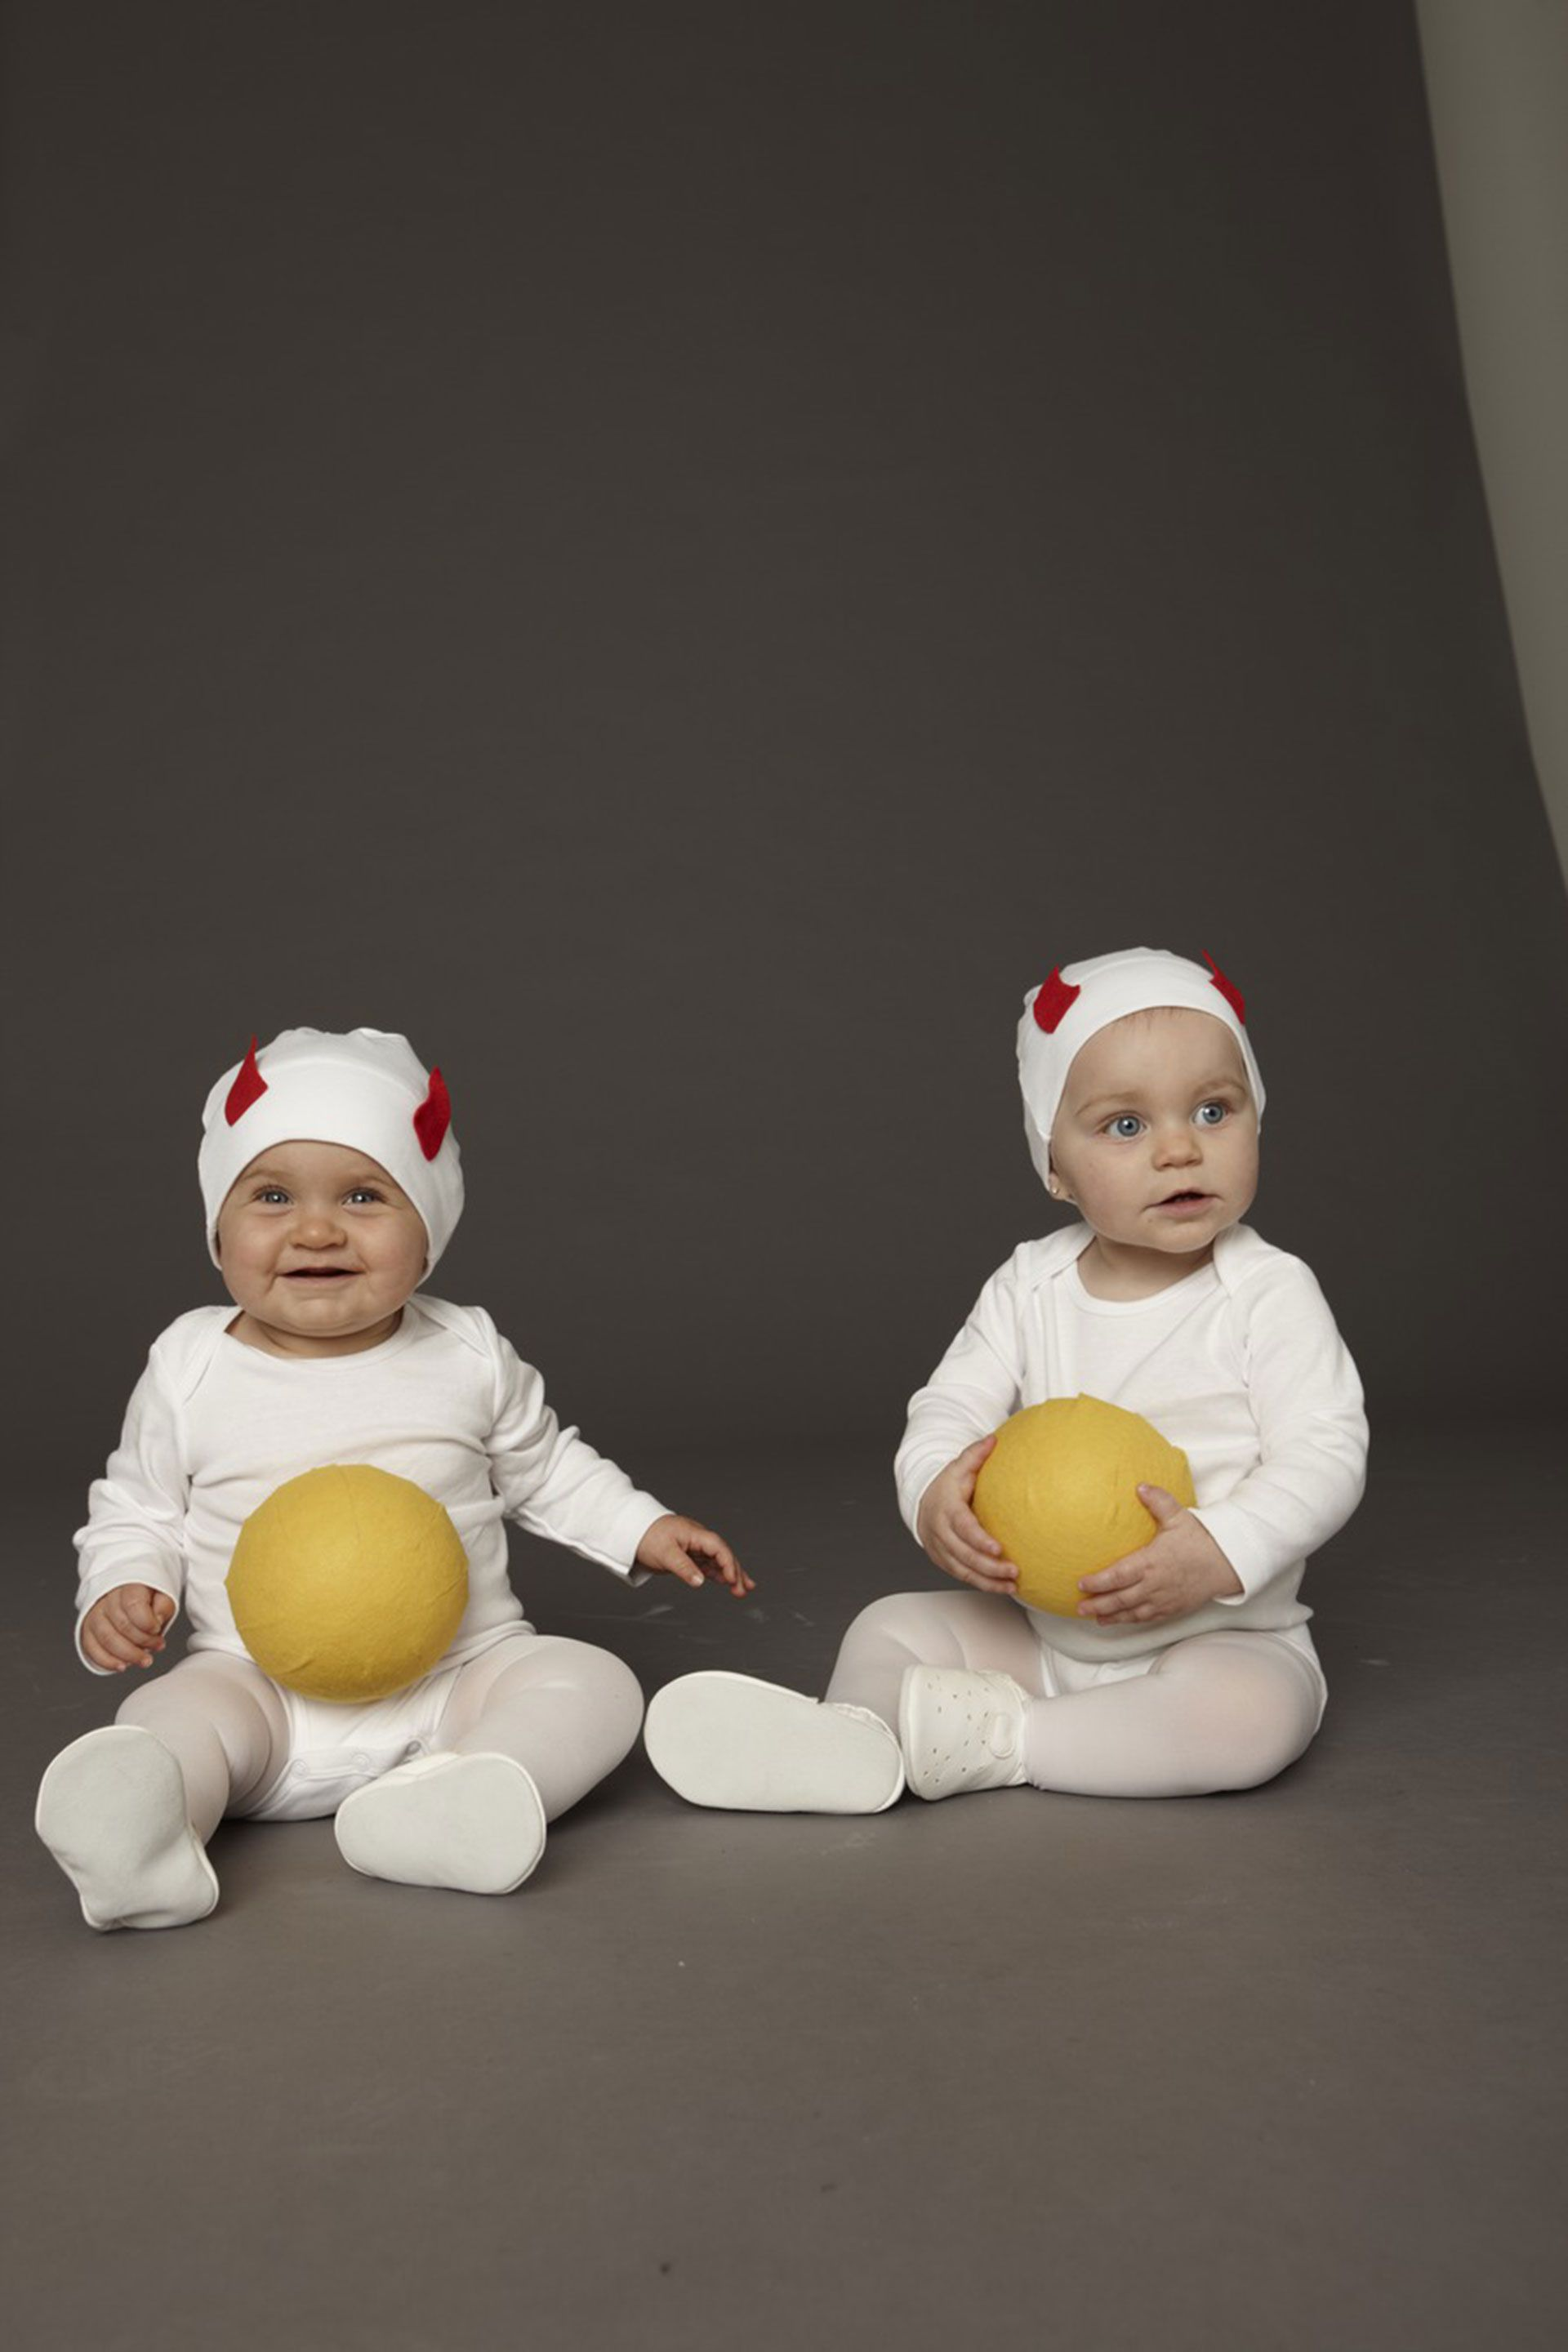 23 Easy Kids Costumes, DIY Costumes for Kids